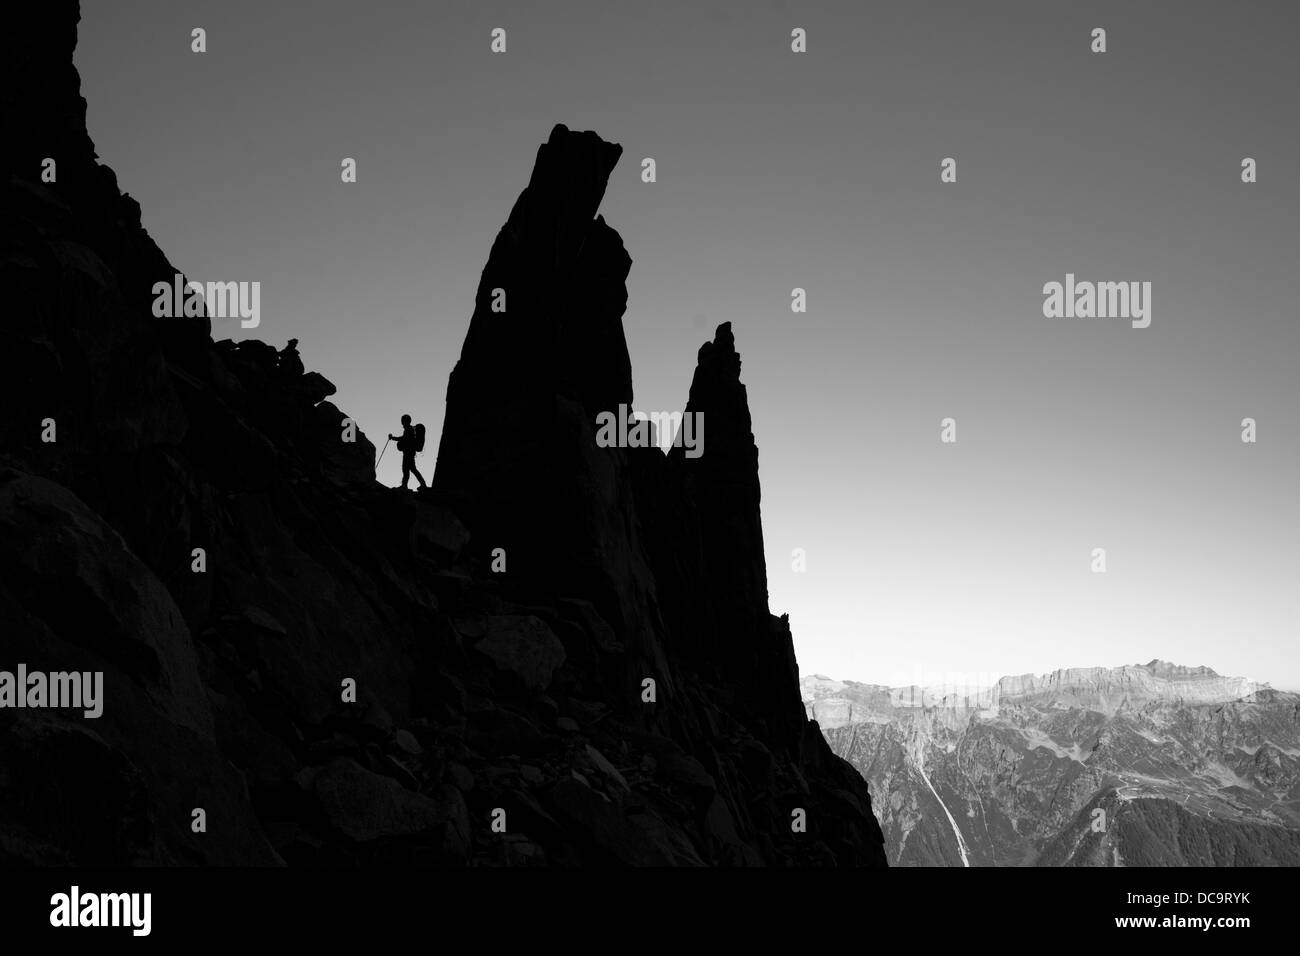 Side view on mountaineer, climber, silhouette on the ridge in mountain scenery. - Stock Image